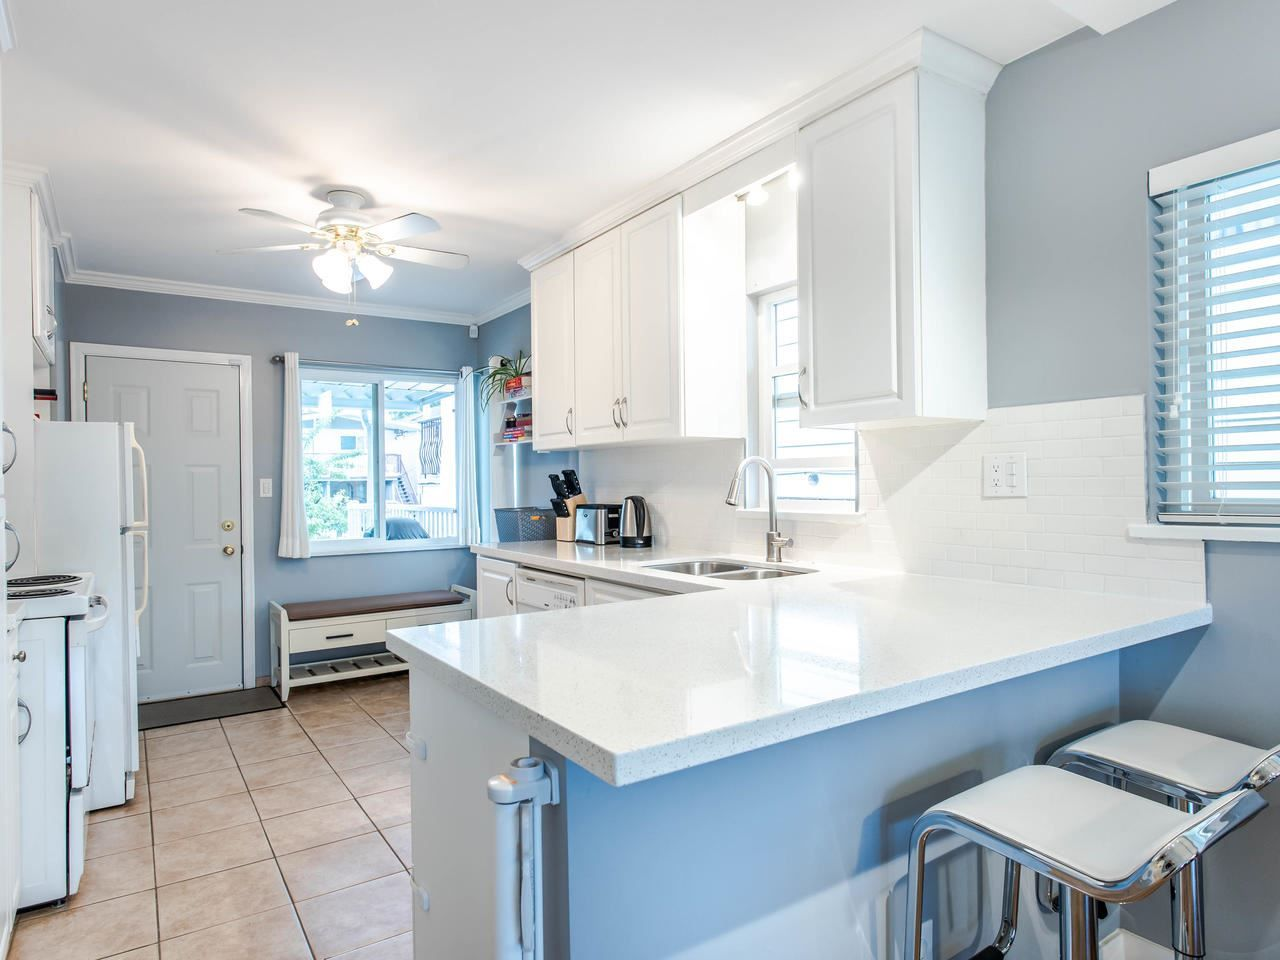 Photo 7: Photos: 4653 UNION STREET in Burnaby: Capitol Hill BN House for sale (Burnaby North)  : MLS®# R2493161